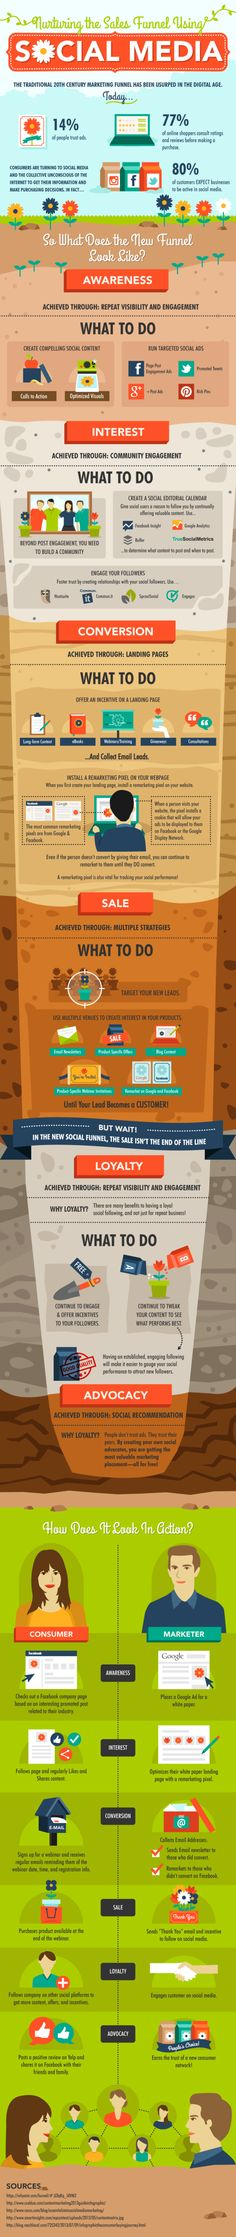 Nurturing the Sales Funnel Using Social Media #Infographic